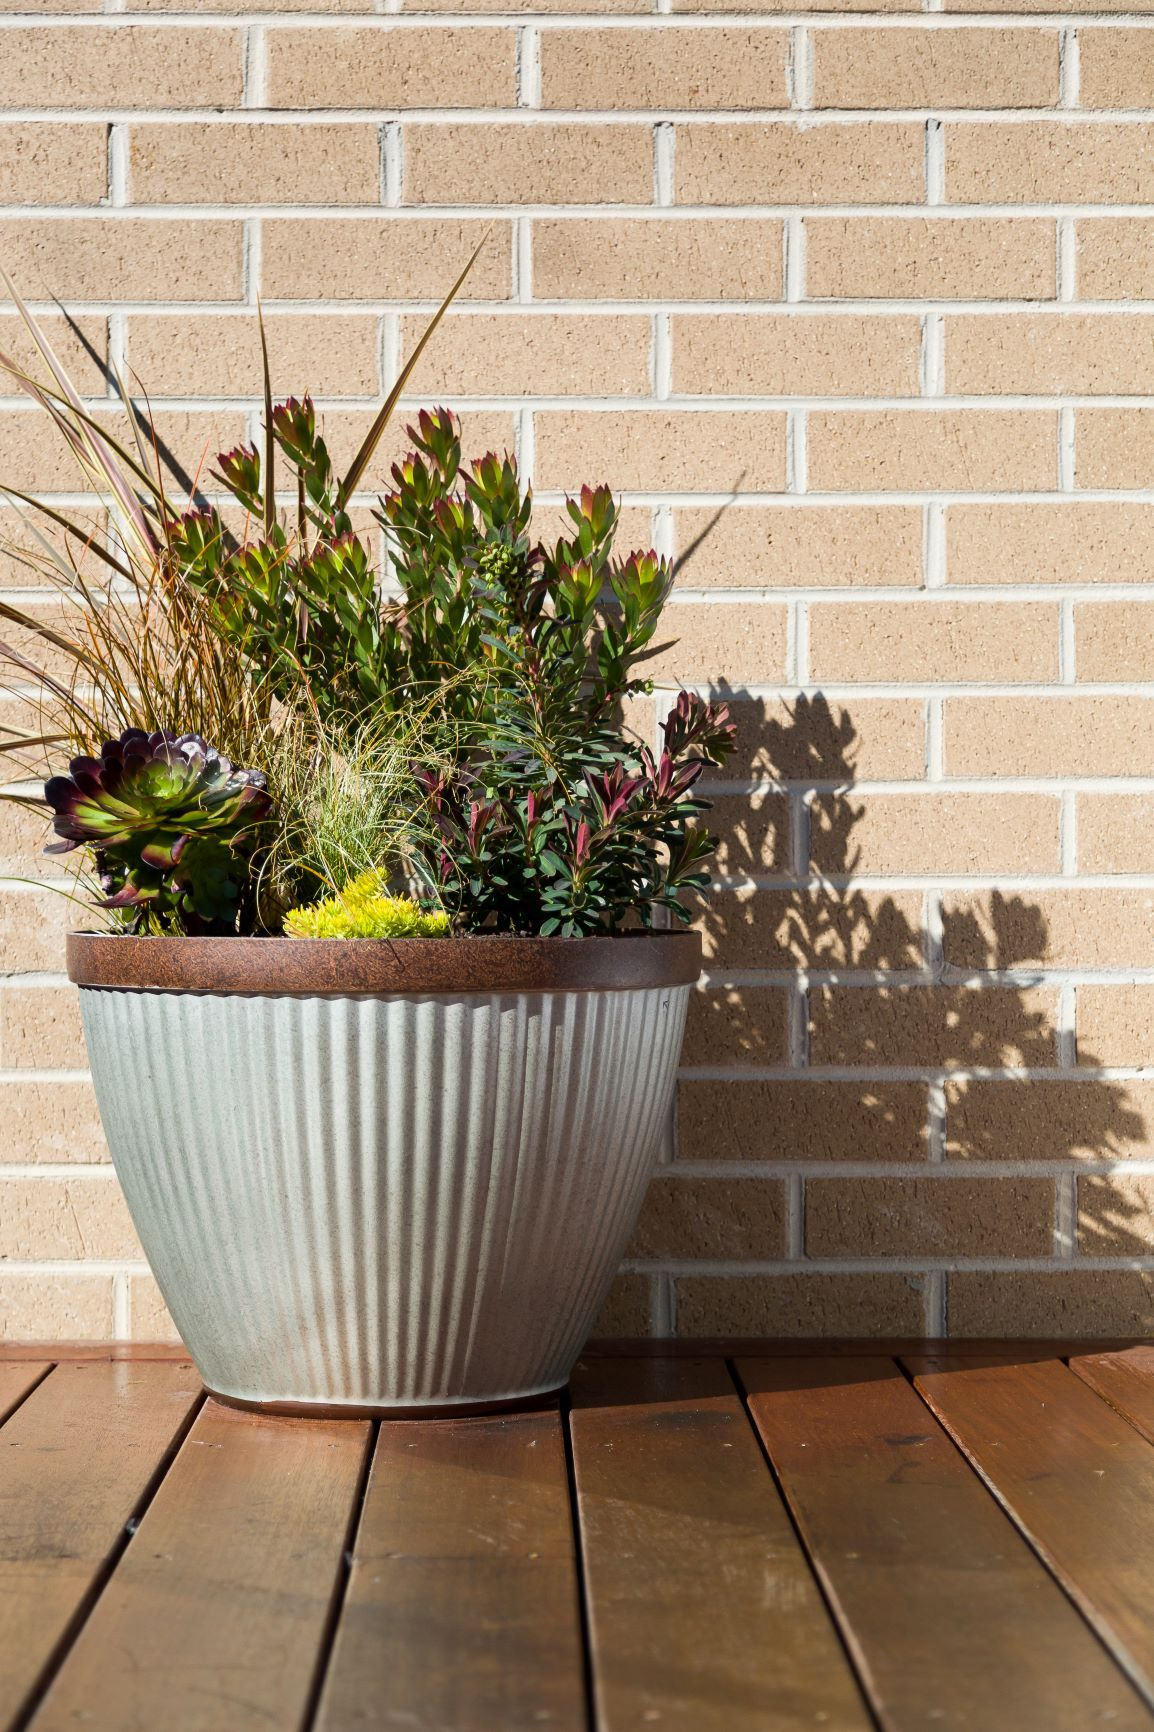 Tips for a healthy green space